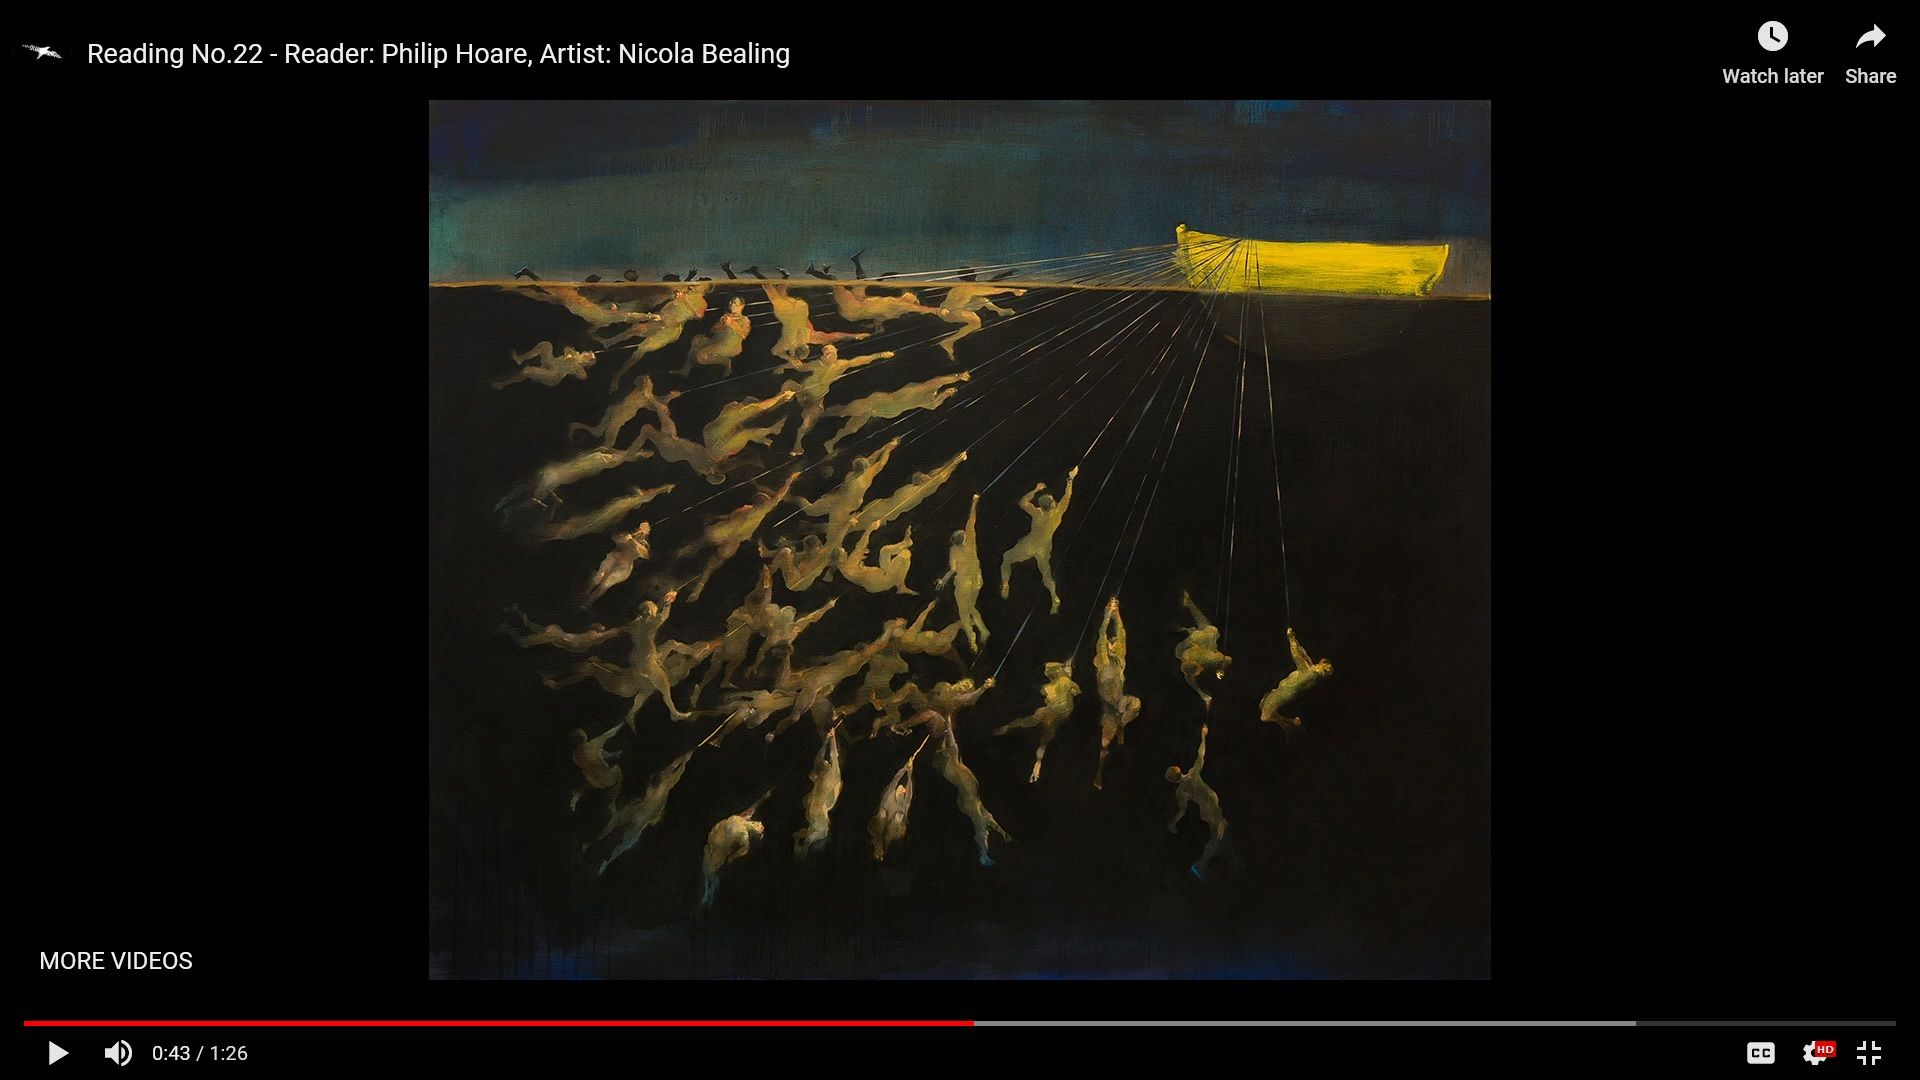 Screenshot of Reading No. 22, featuring art by Nicola Bealing